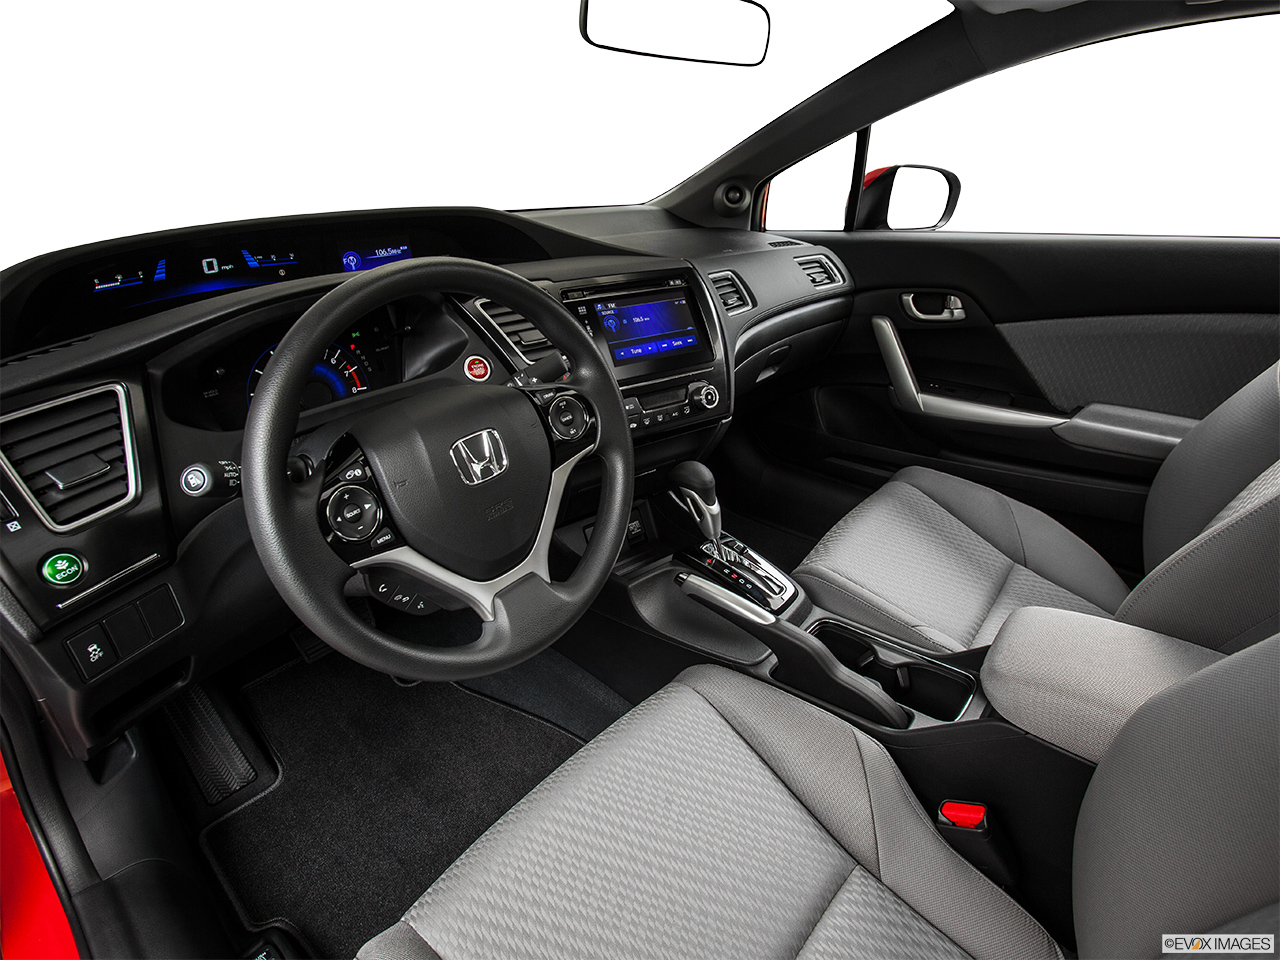 2015 Honda Civic Coupe Manual EX - Interior Hero (driver's side)